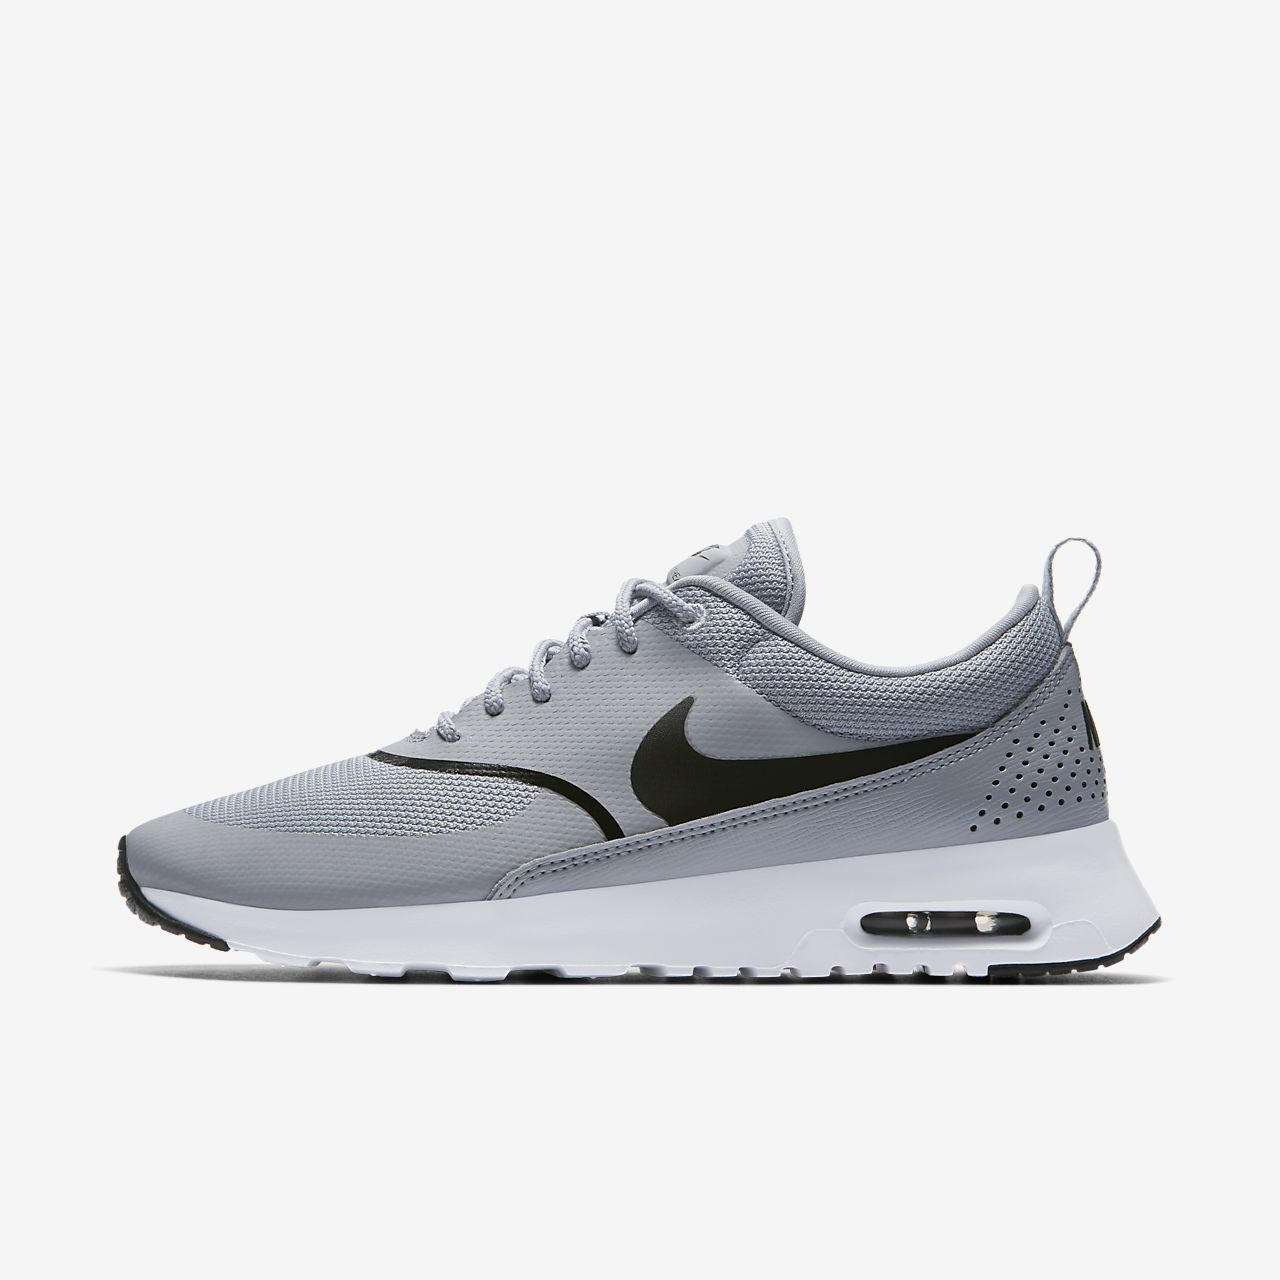 reputable site 7bef0 255e1 ... Nike Air Max Thea Women s Shoe